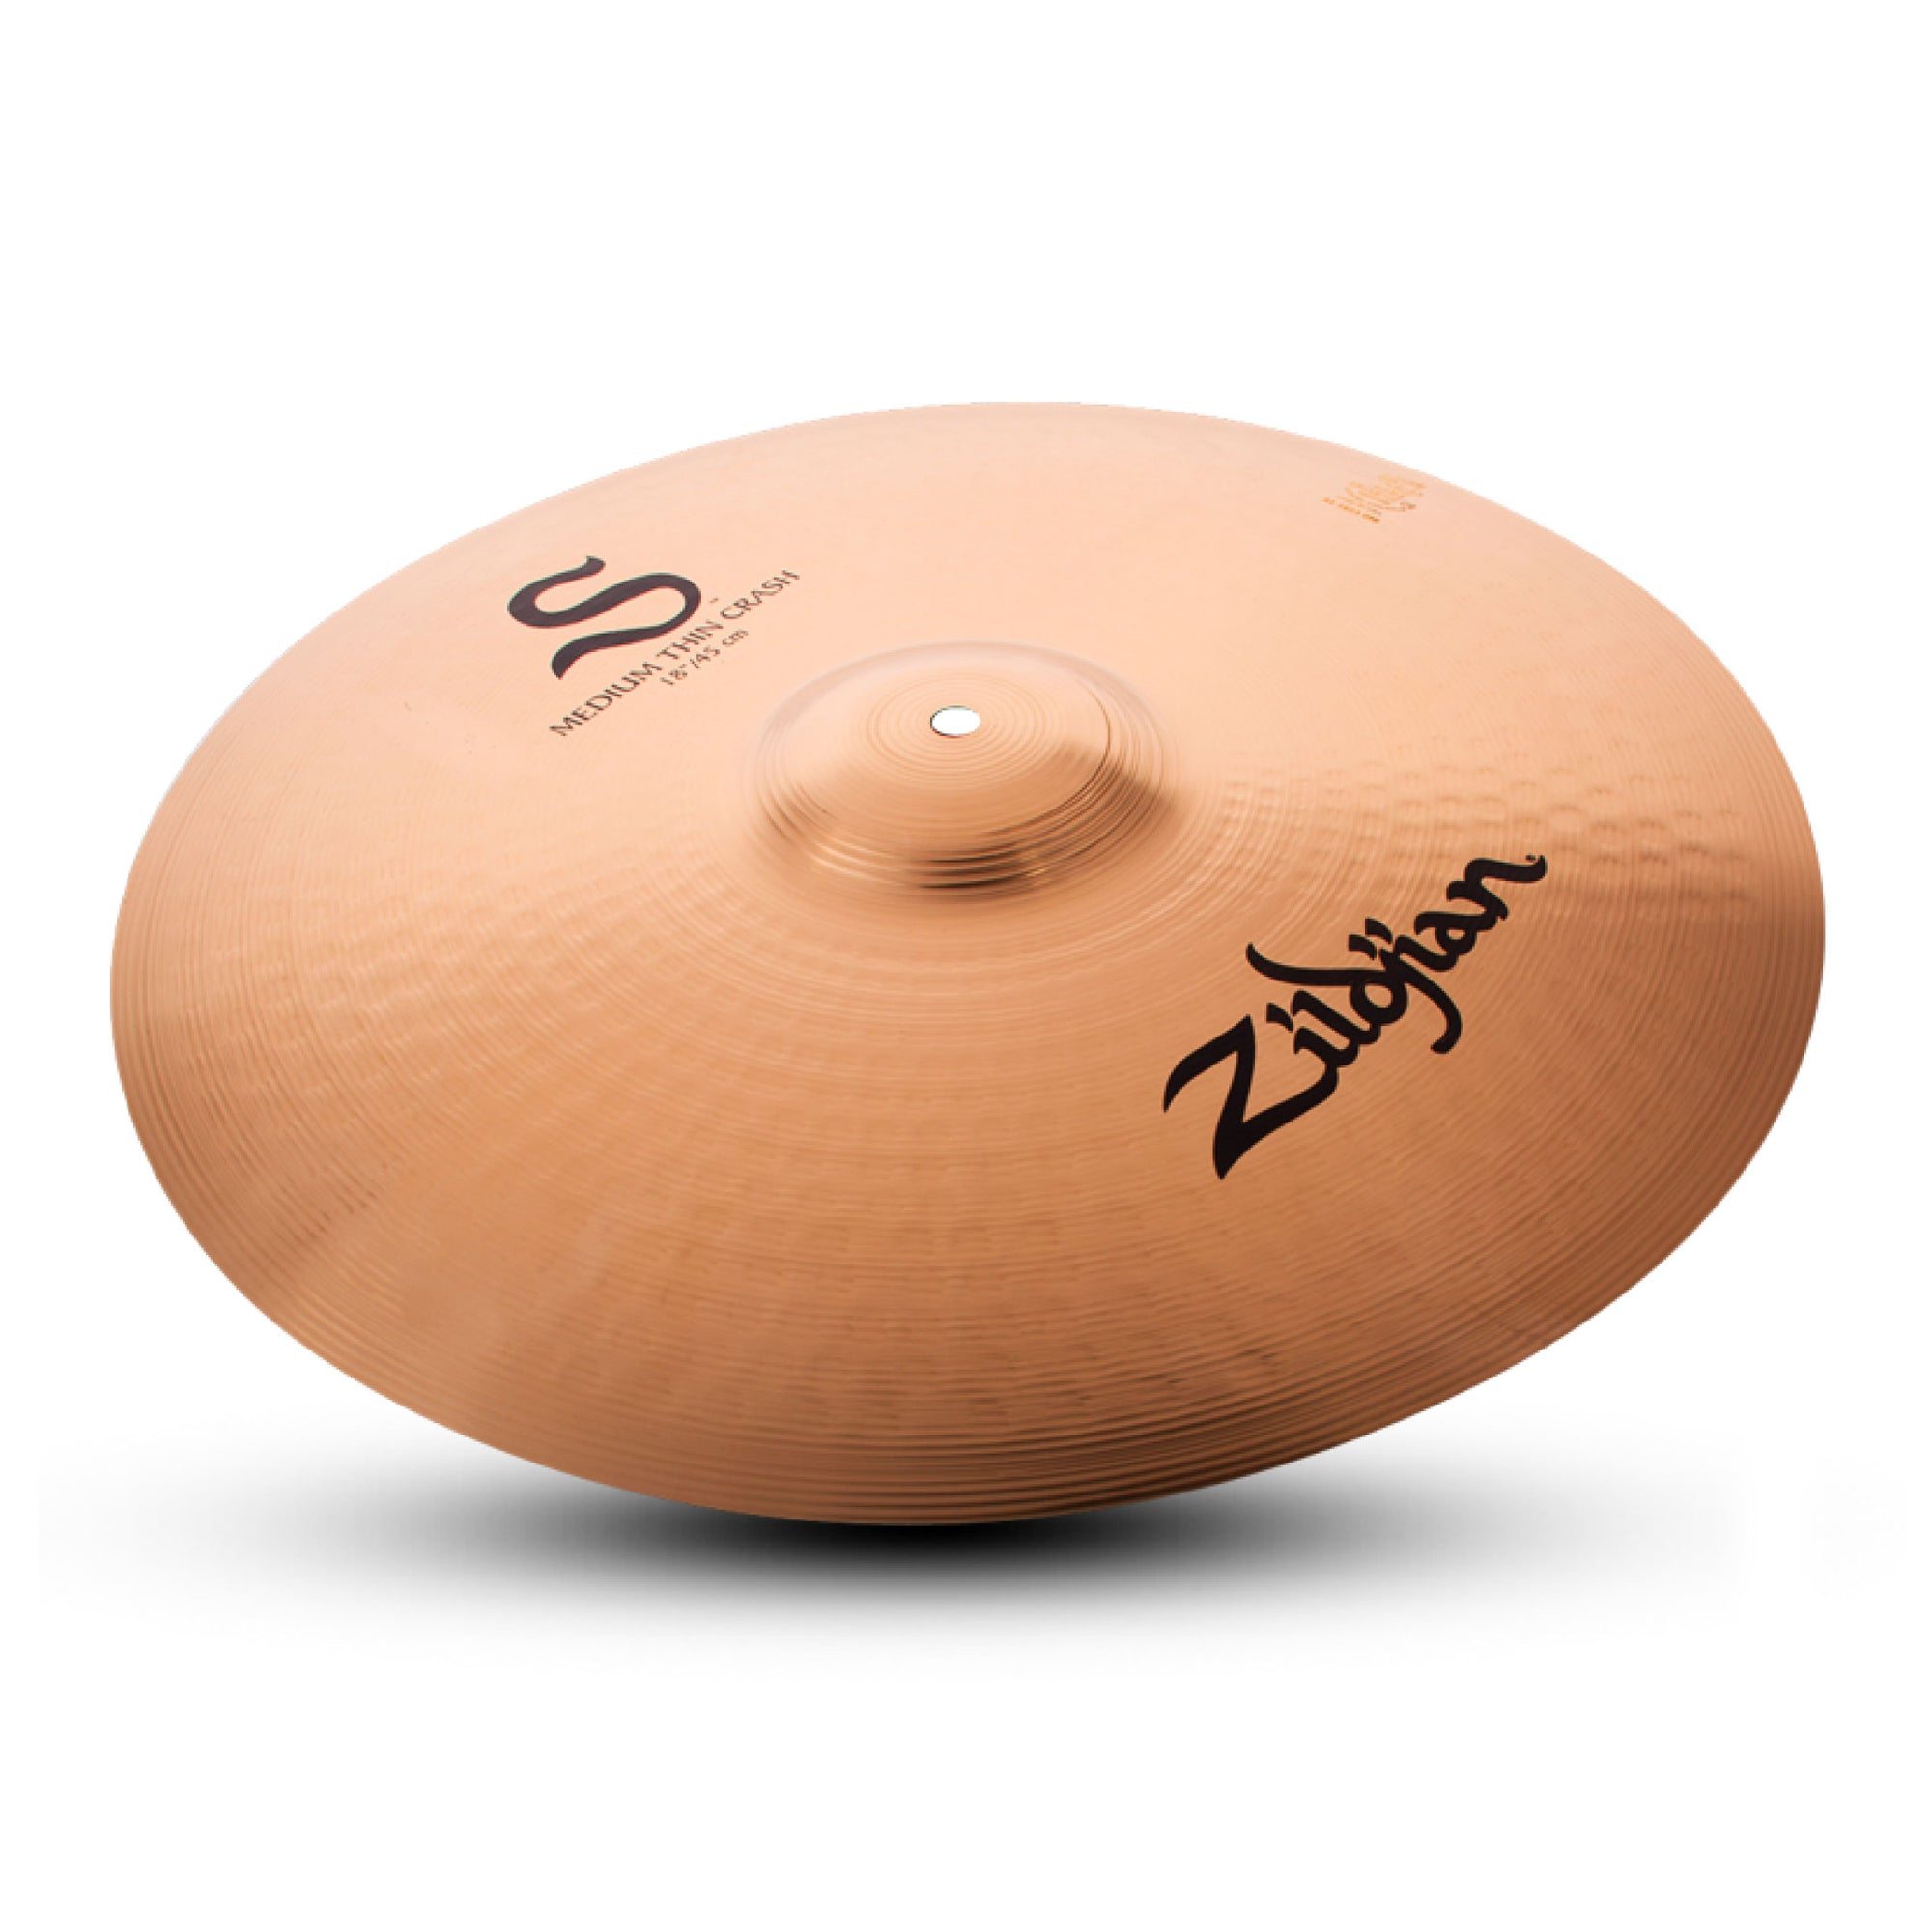 Zildjian Cymbal S Med Thin Crash - Tarpley Music Company, Inc.